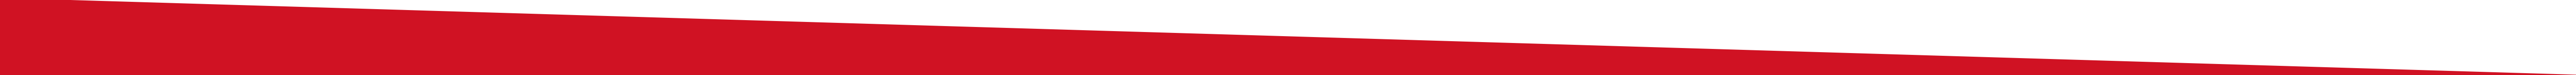 red_left